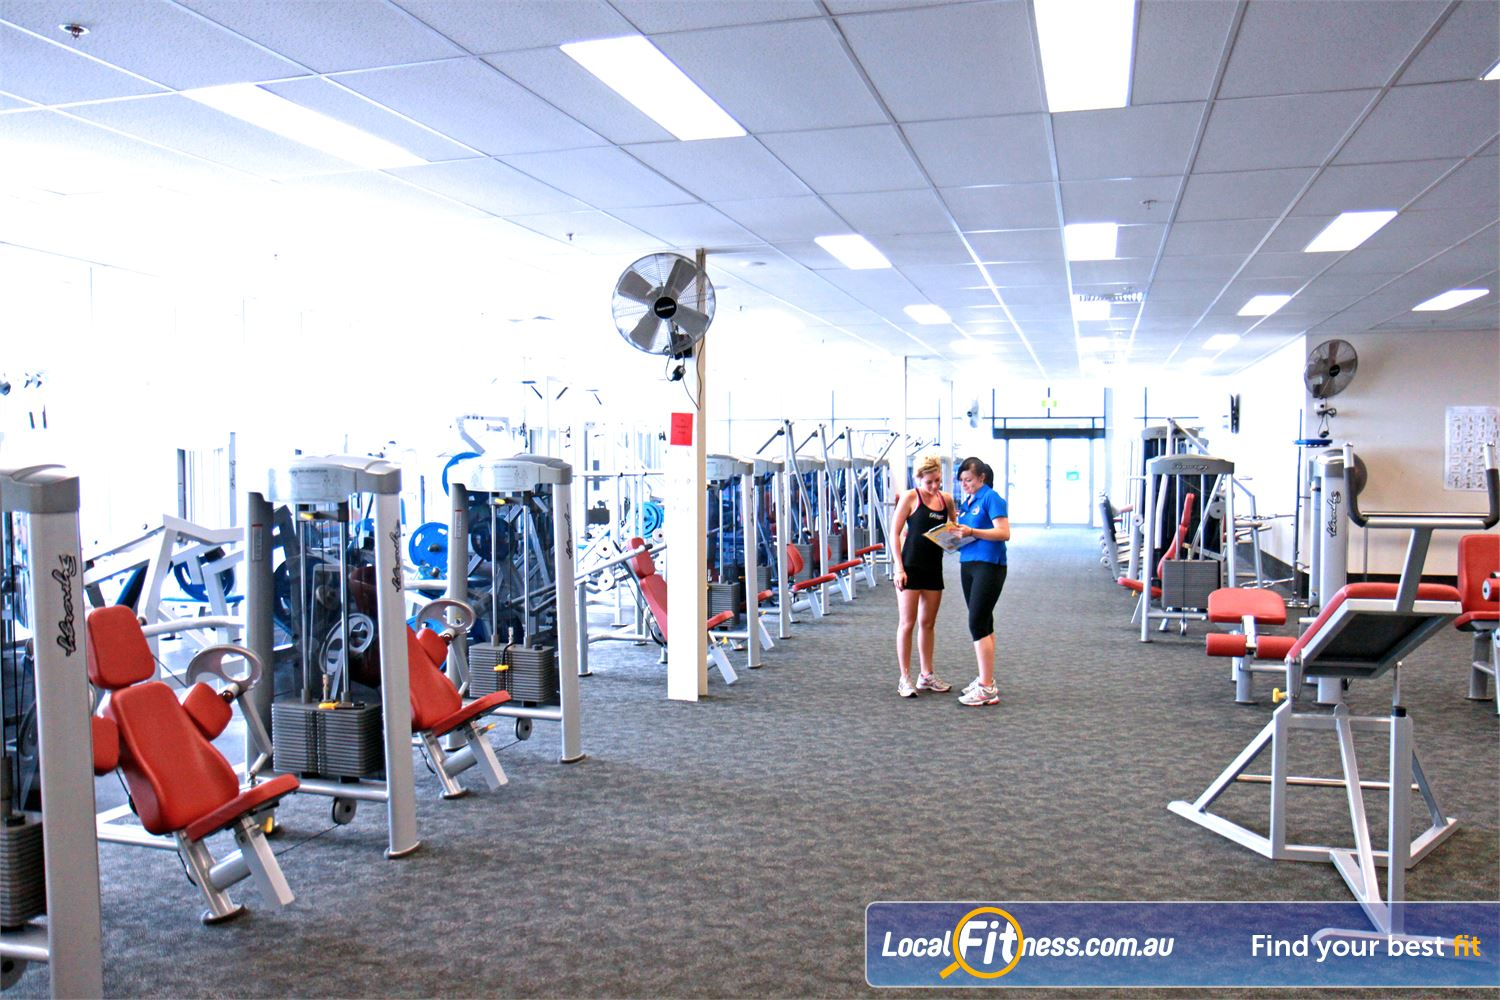 Goodlife Health Clubs Ipswich Our Ipswich gym provides 2300 sqm of fitness under one roof.